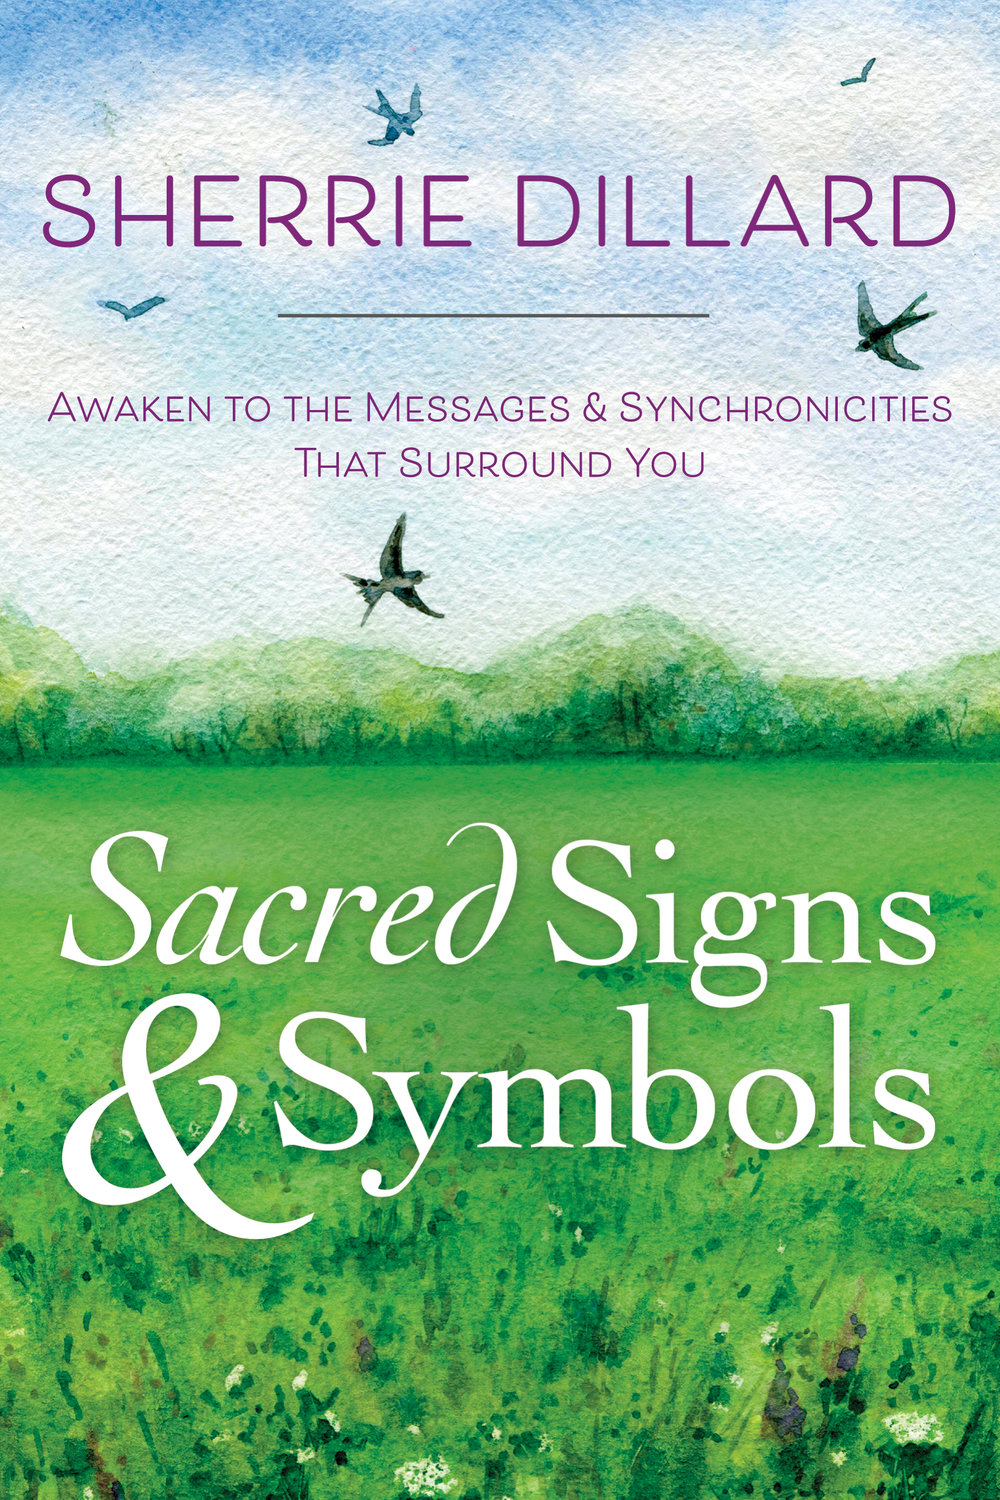 Sacred Signs and Symbols.jpg